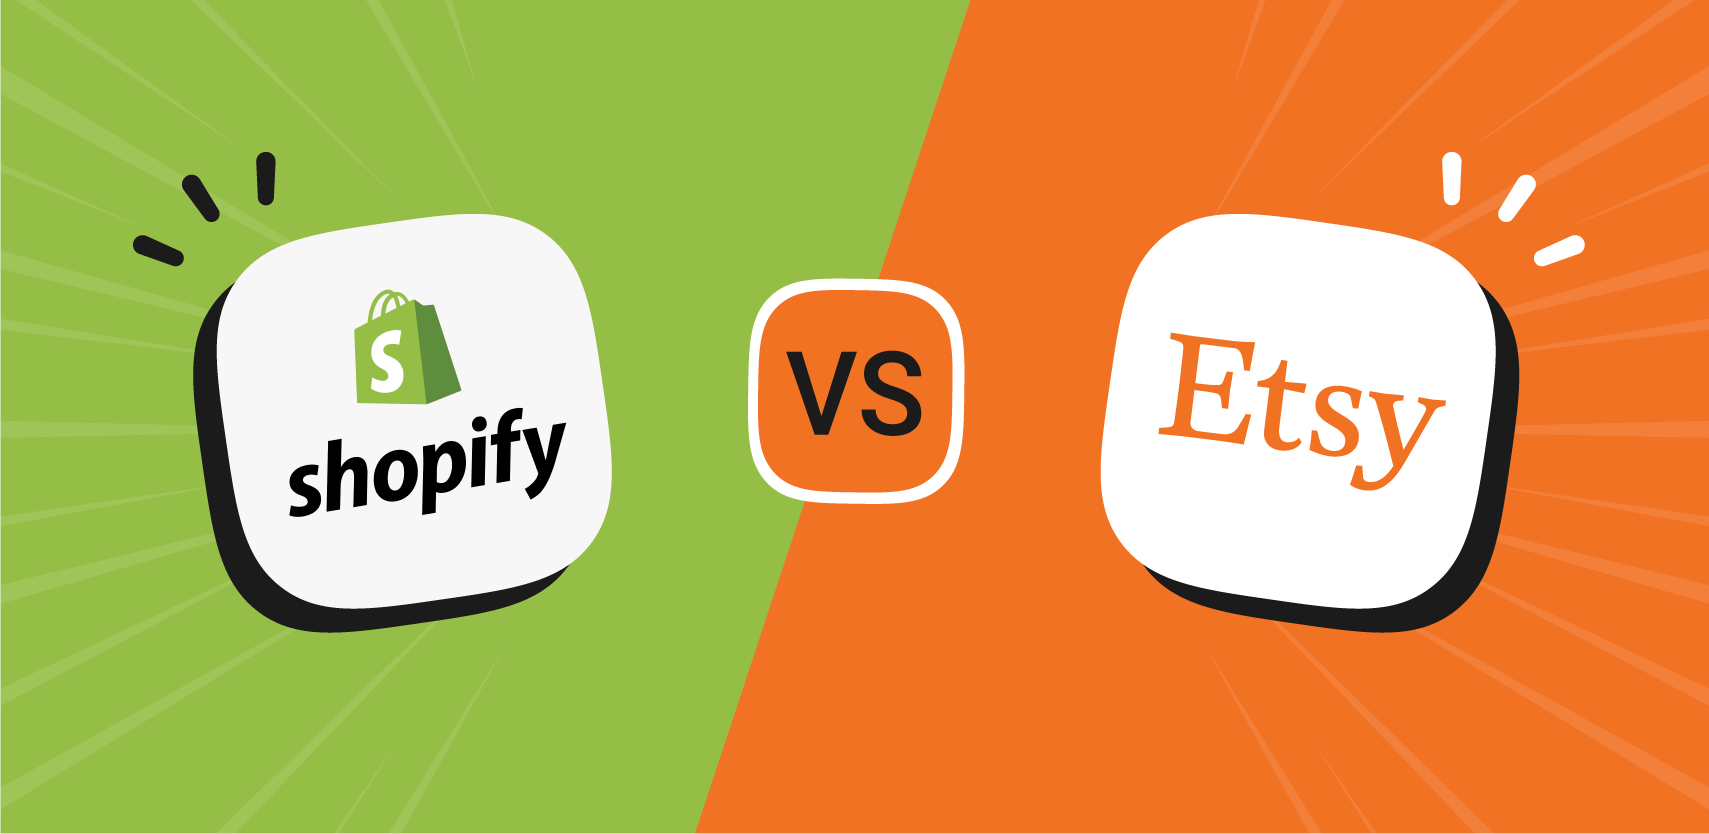 Shopify vs. Etsy: Which is the best eCommerce platform for your store?